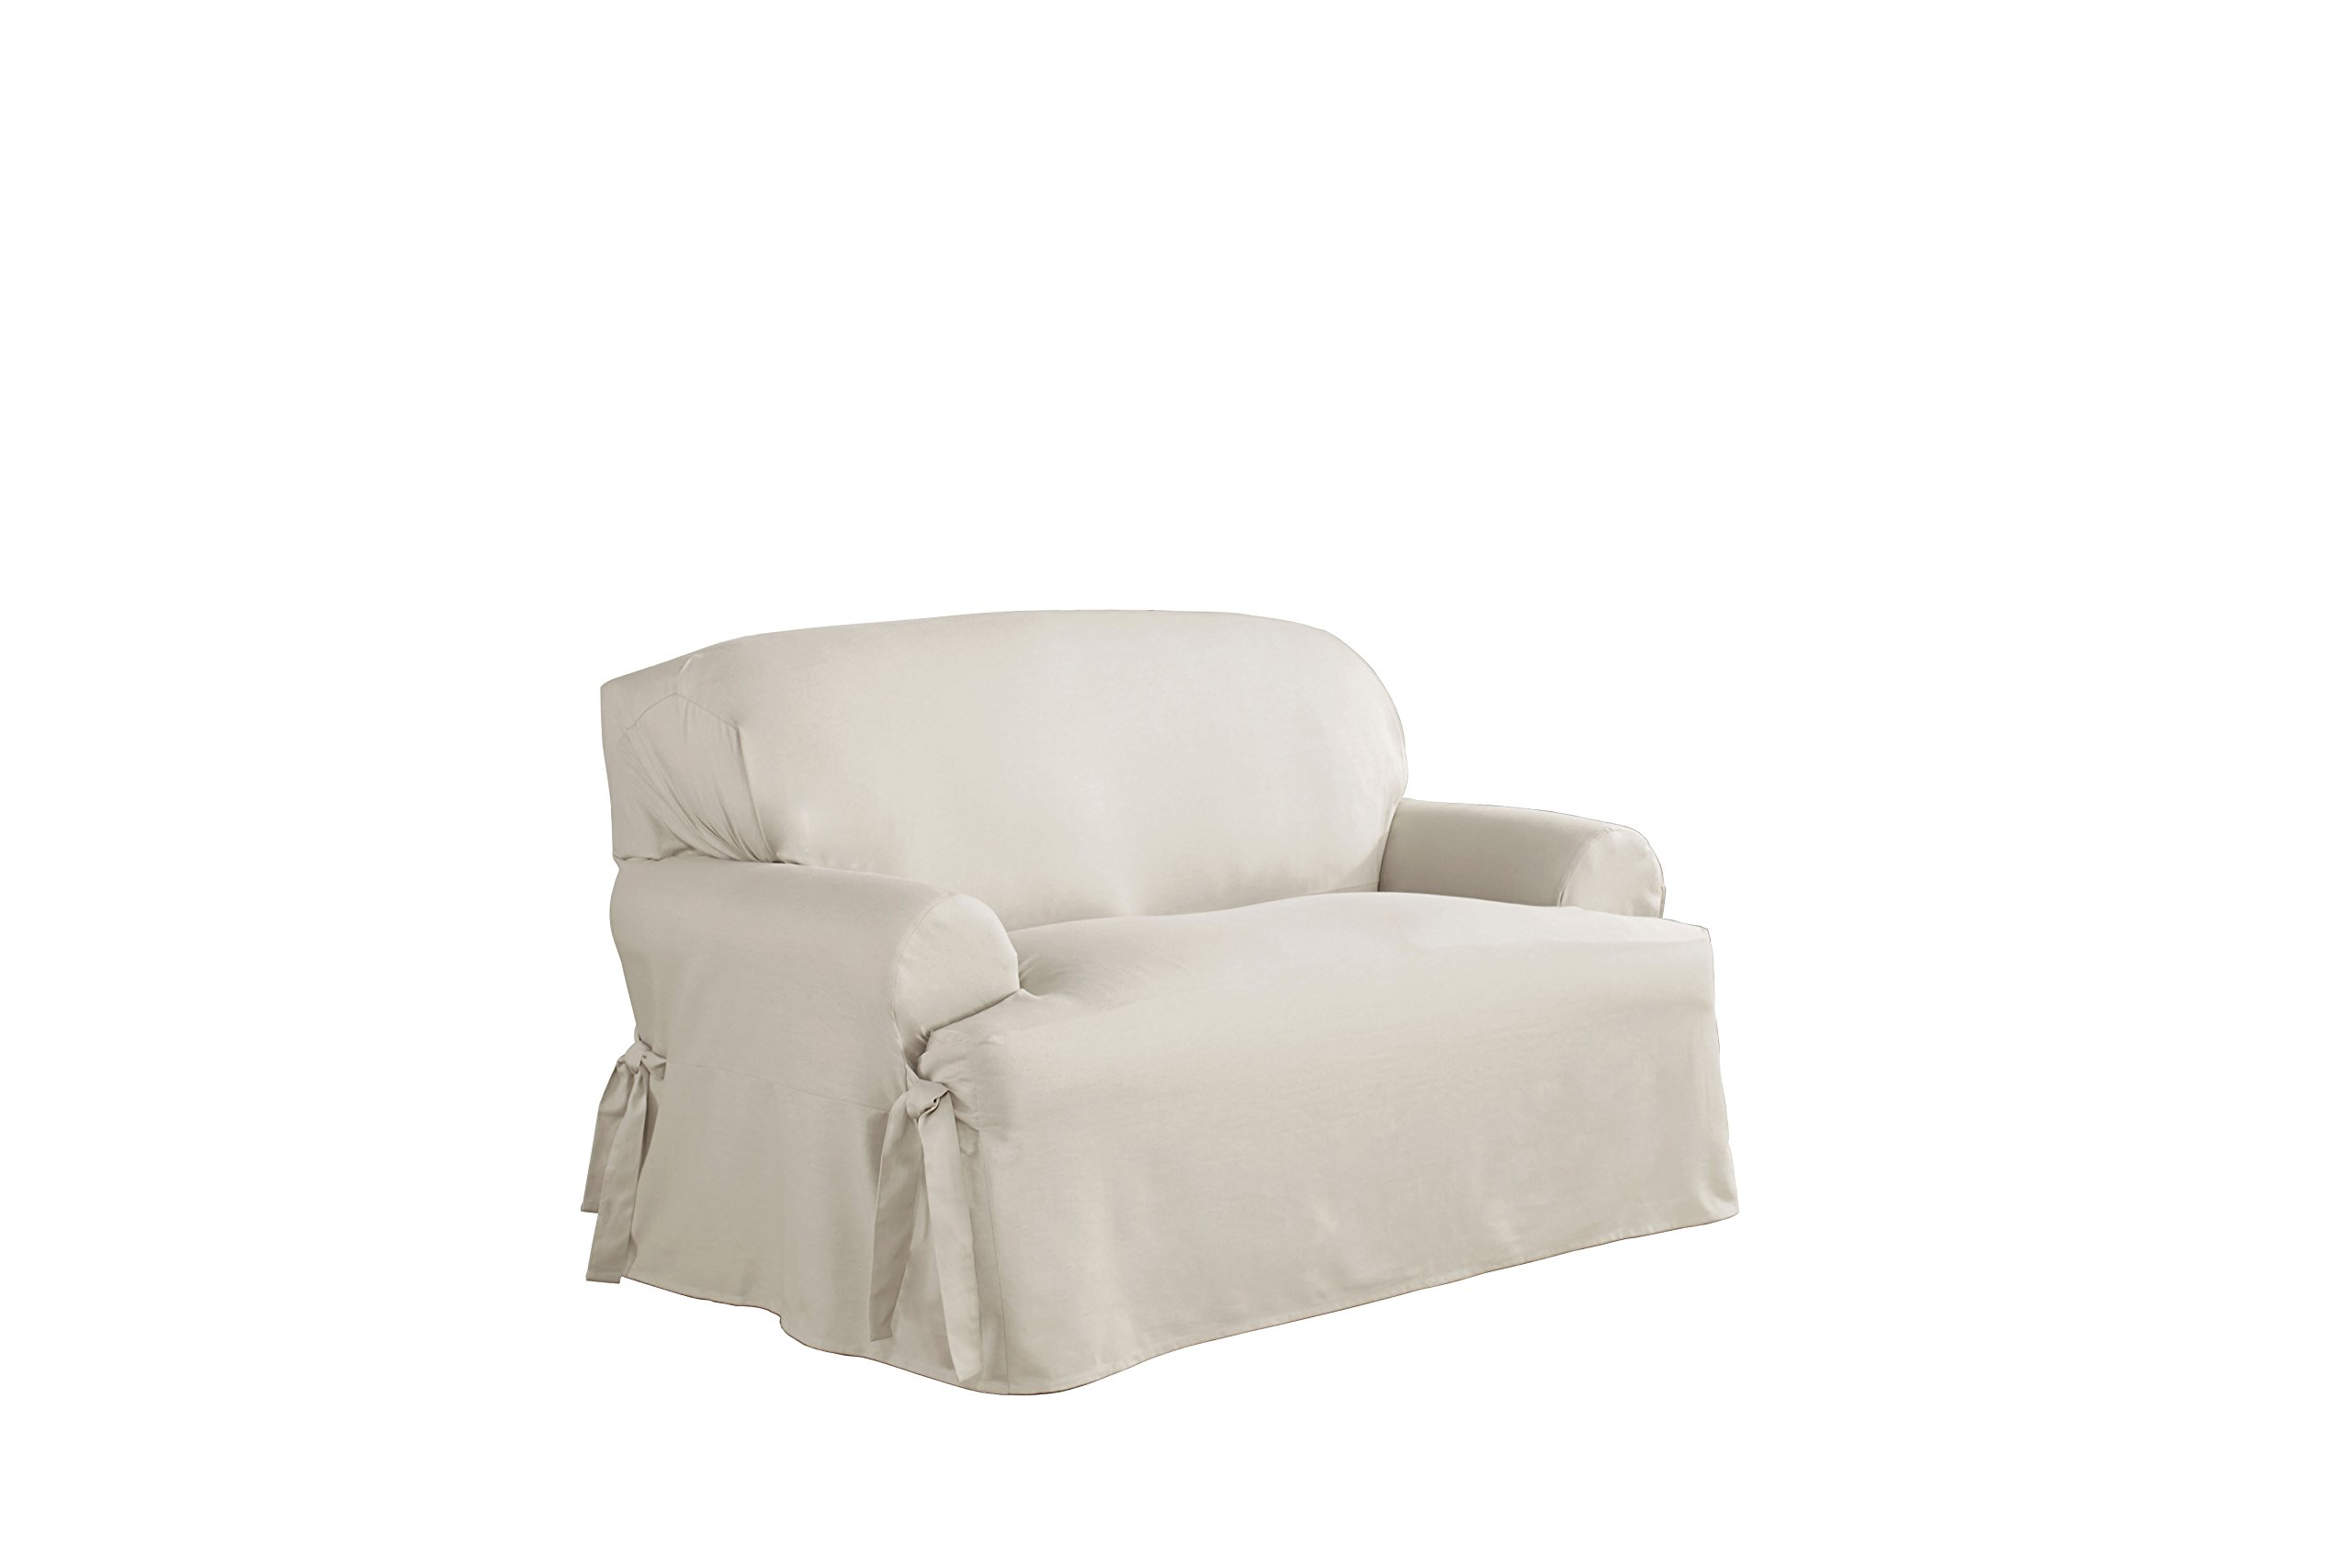 Serta 863076 Relaxed Fit Duck Slipcover T Loveseat, White by Serta